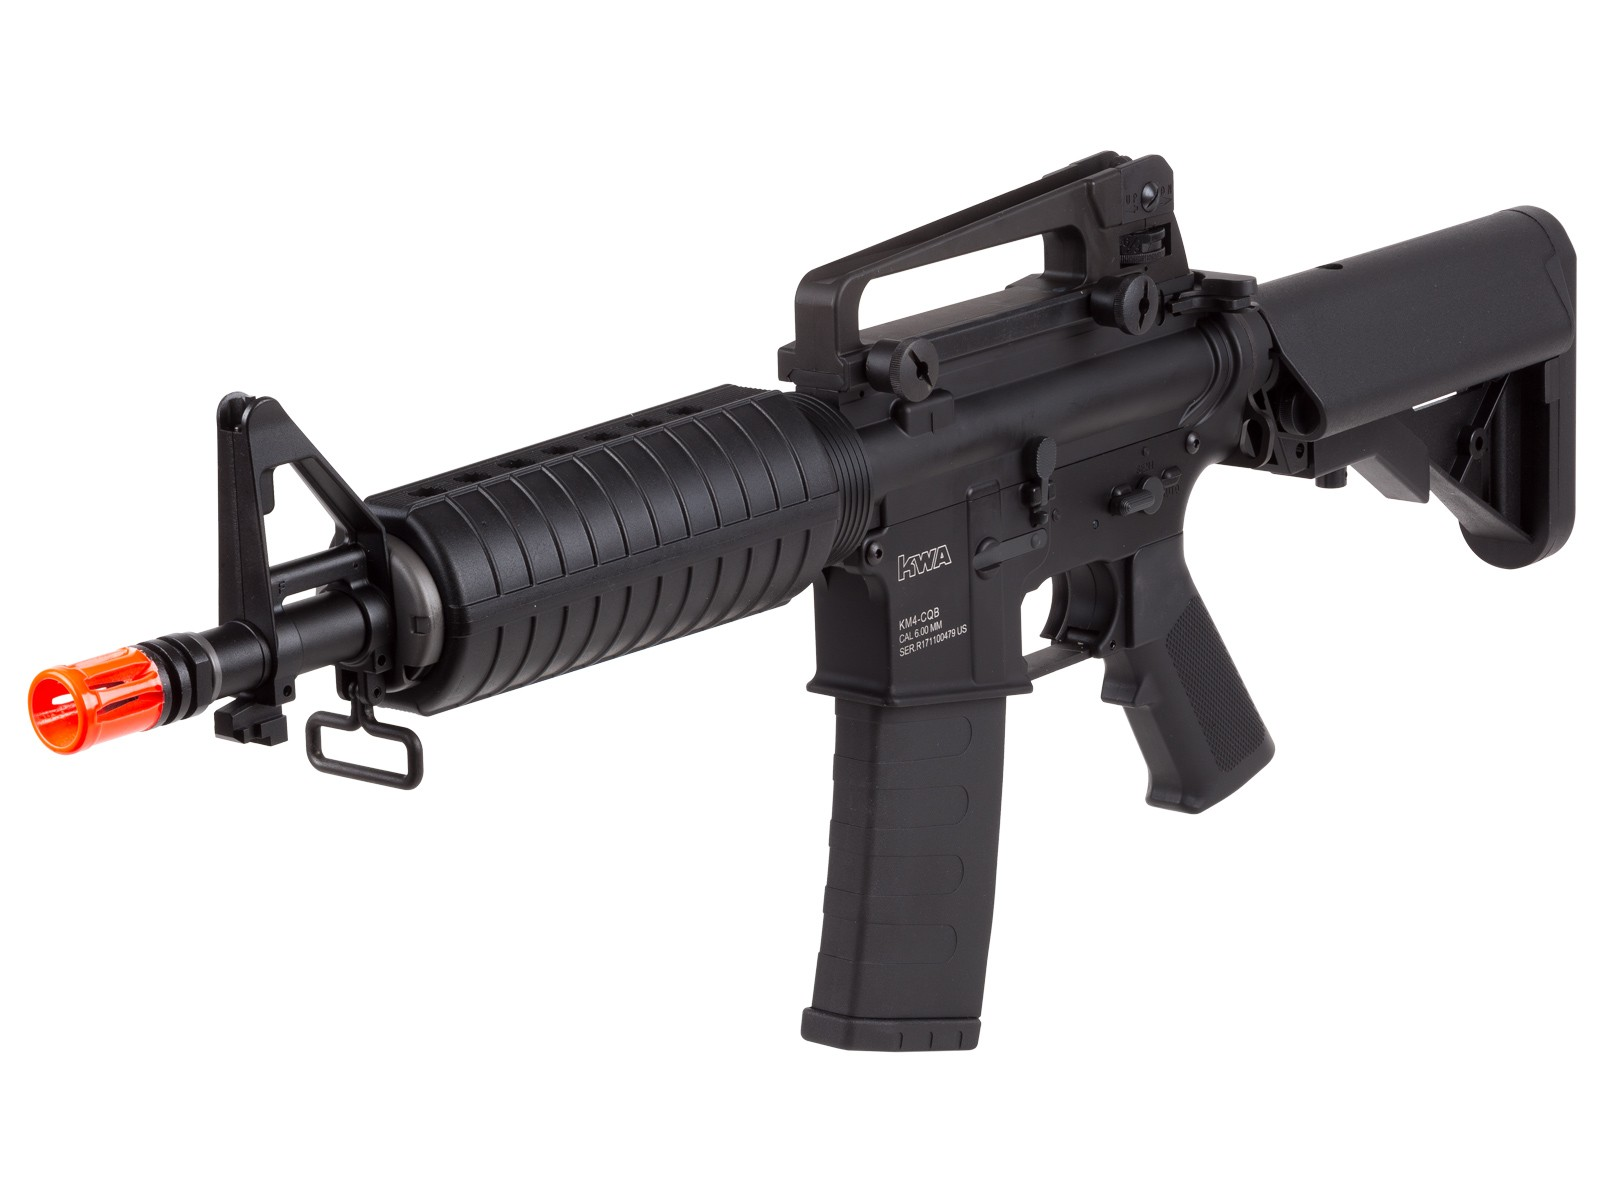 KWA KM4 Full Metal CQB AEG 2 Airsoft Rifle 6mm Image